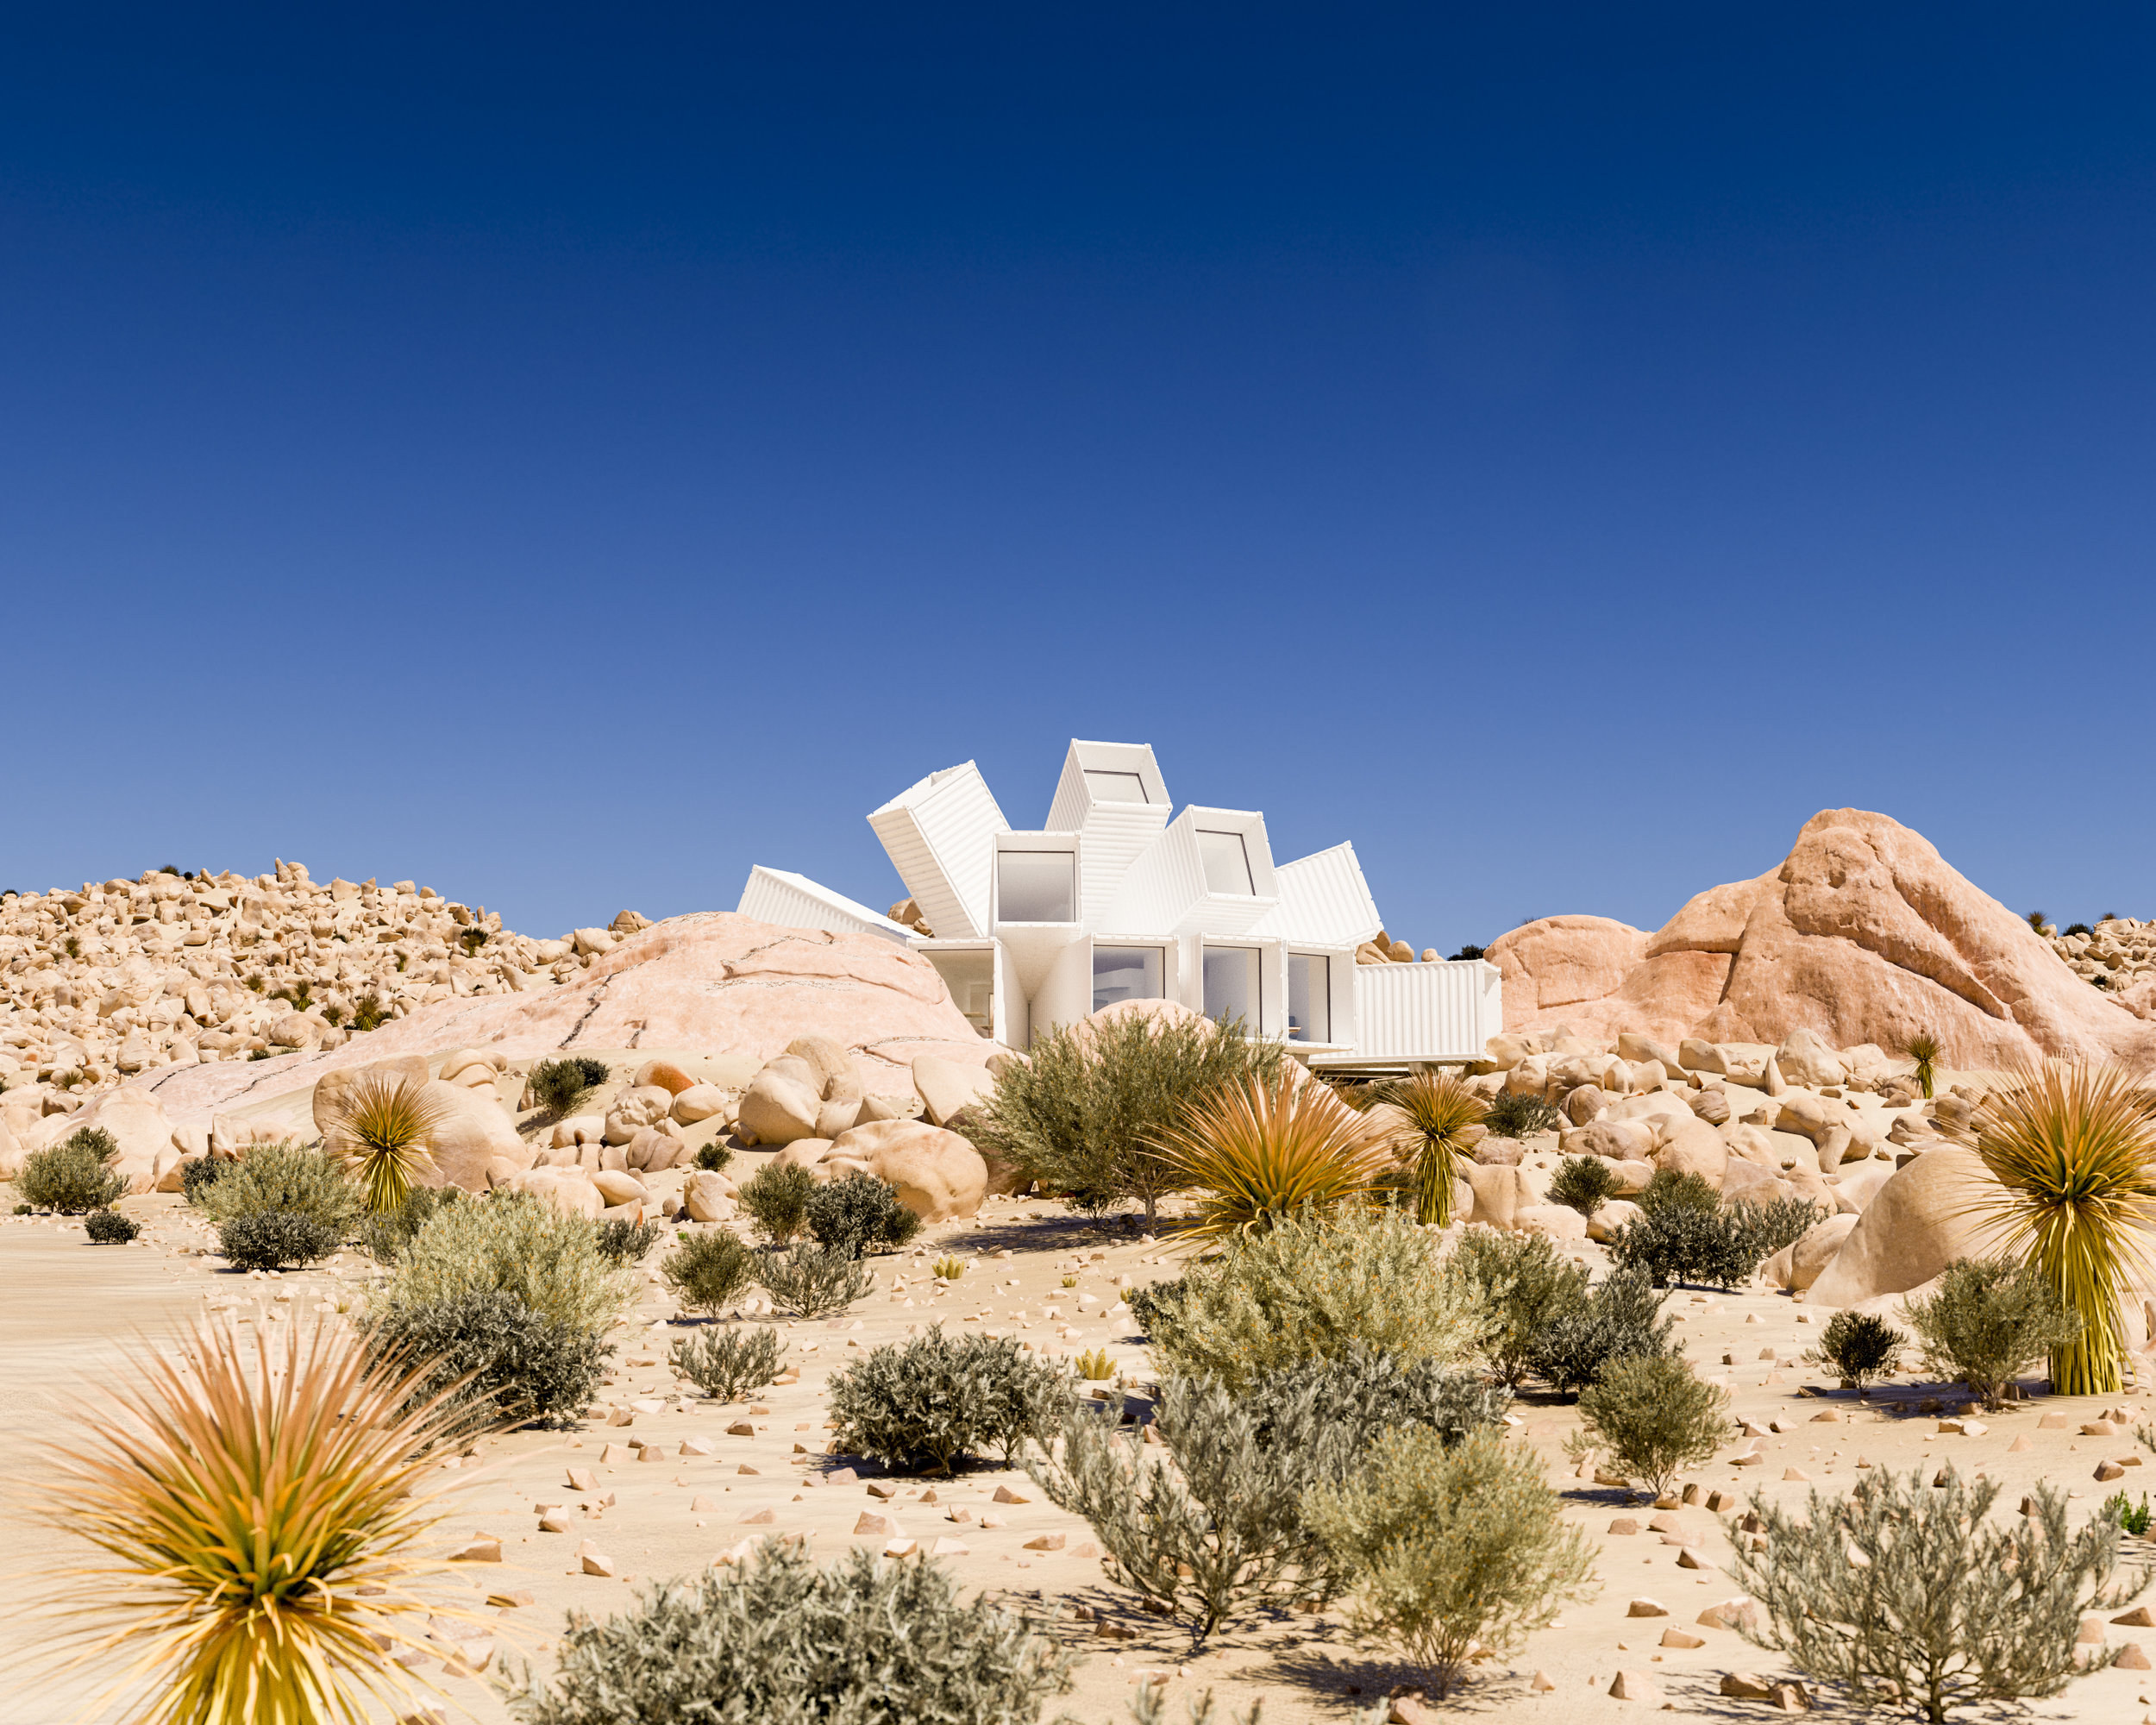 Whitaker Studio visualisation of Joshua Tree Residence